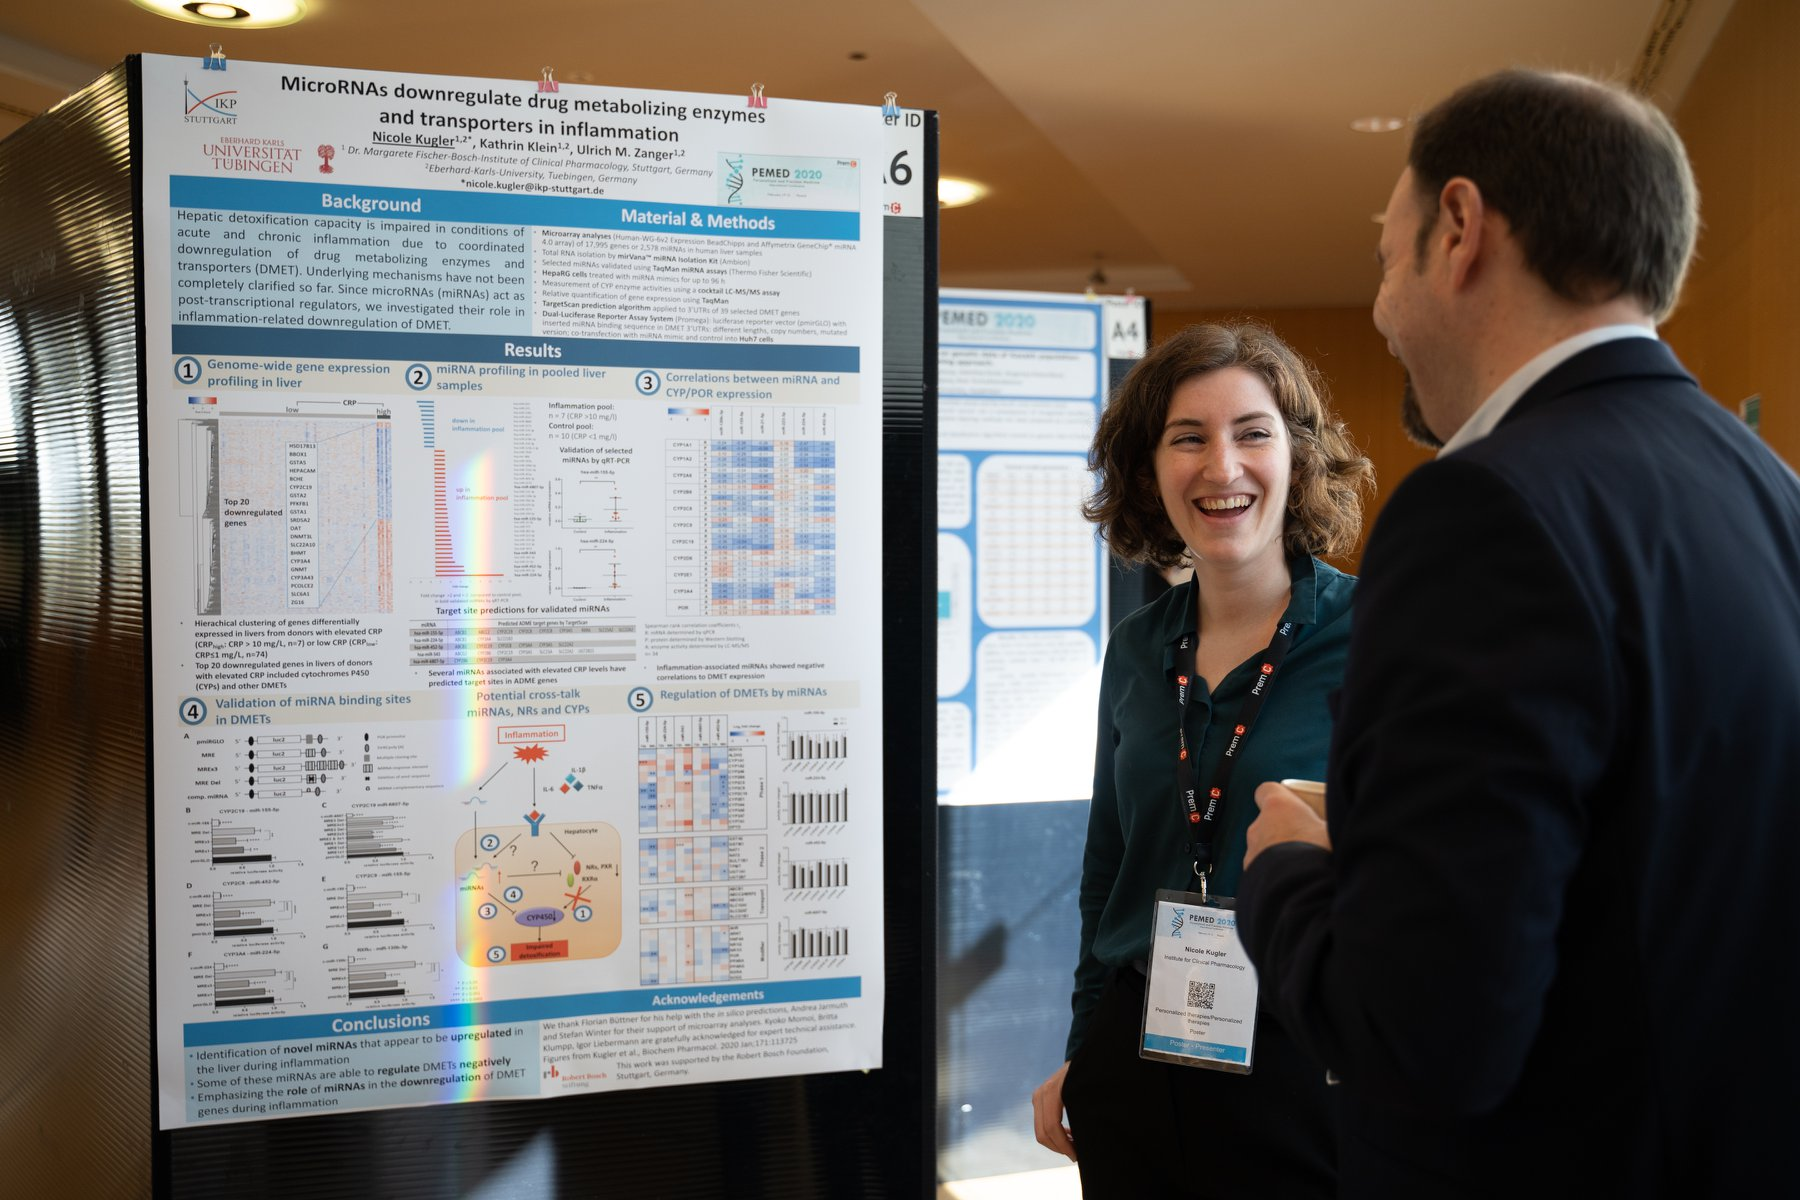 Attendee and Presenter interacting during a poster session